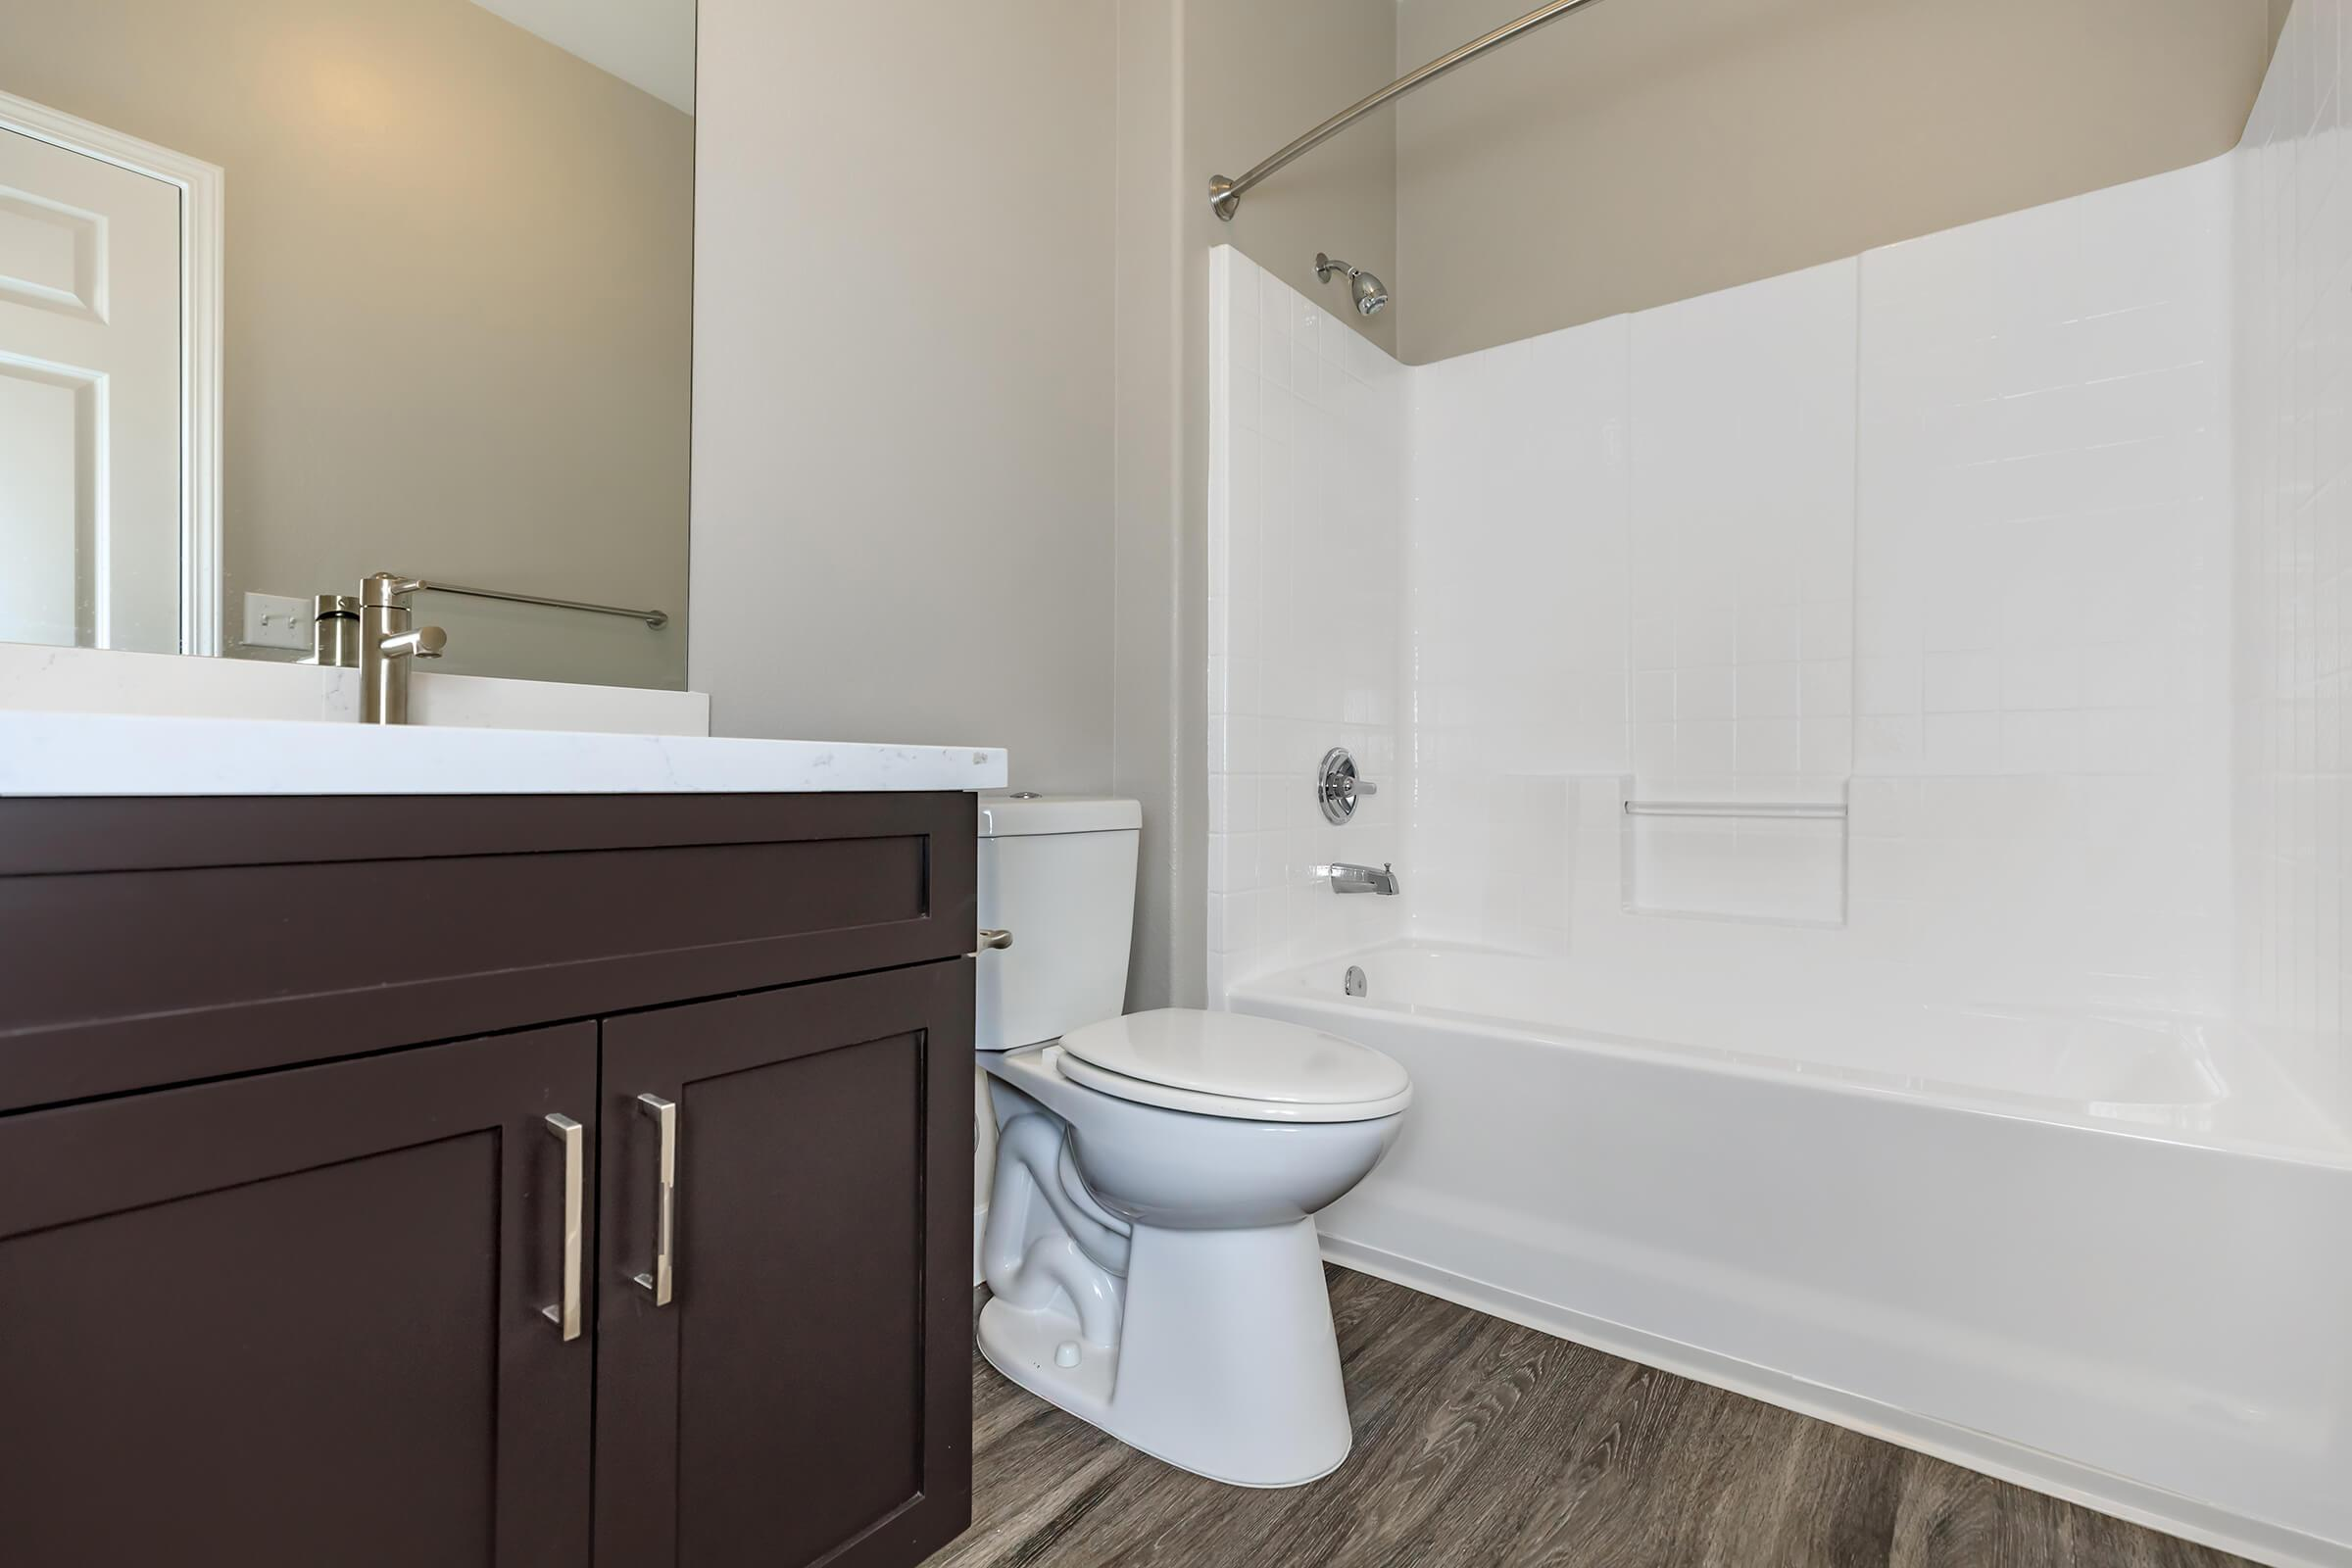 Vacant bathroom with wooden floors